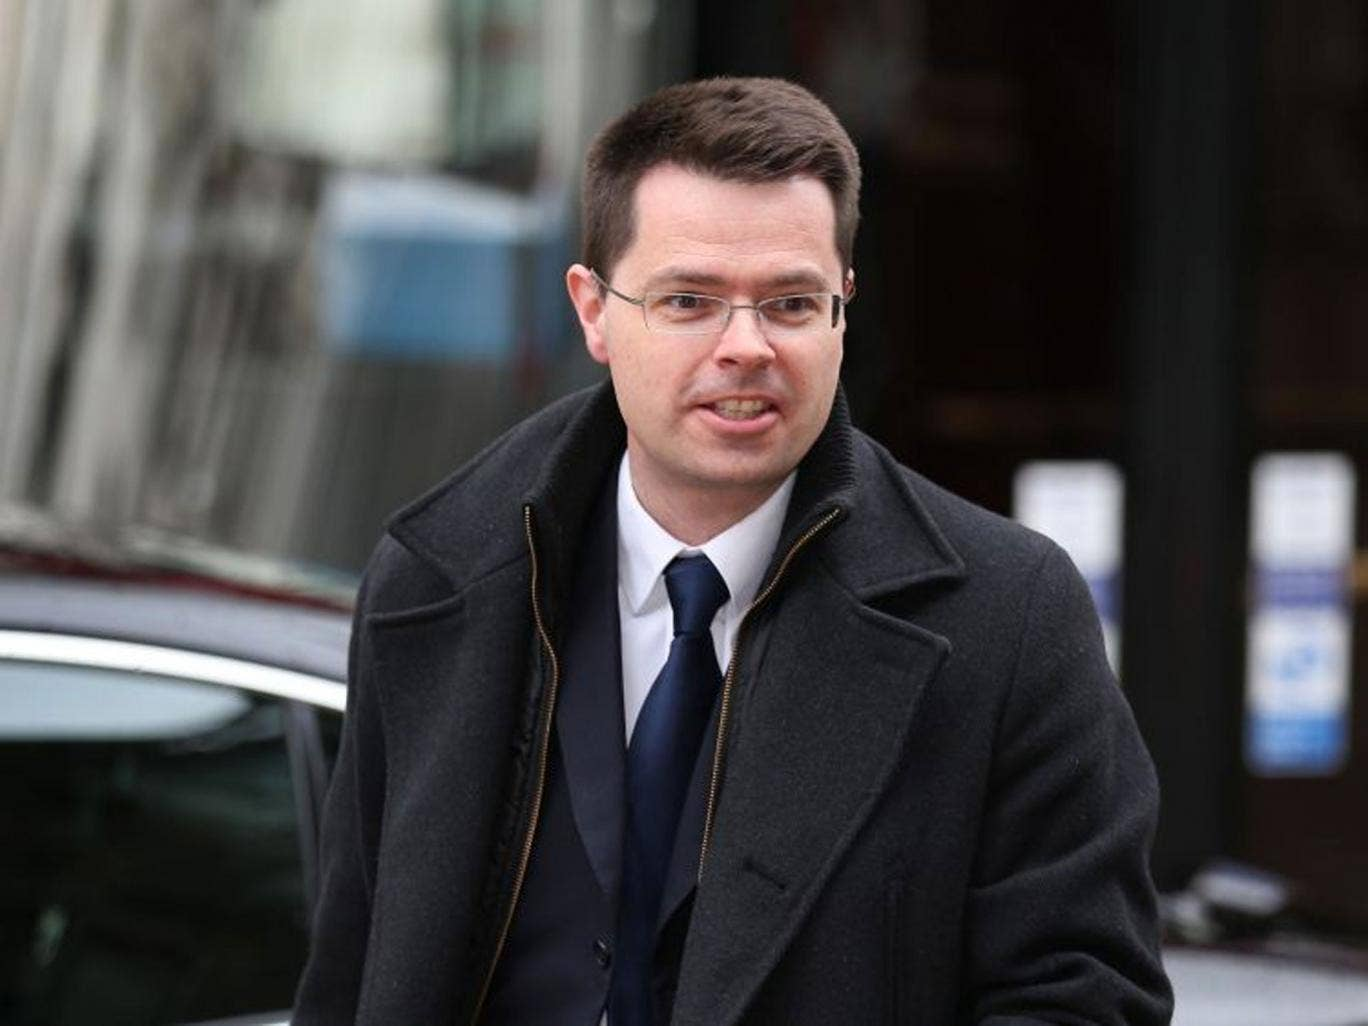 Brokenshire's first speech has not been well received